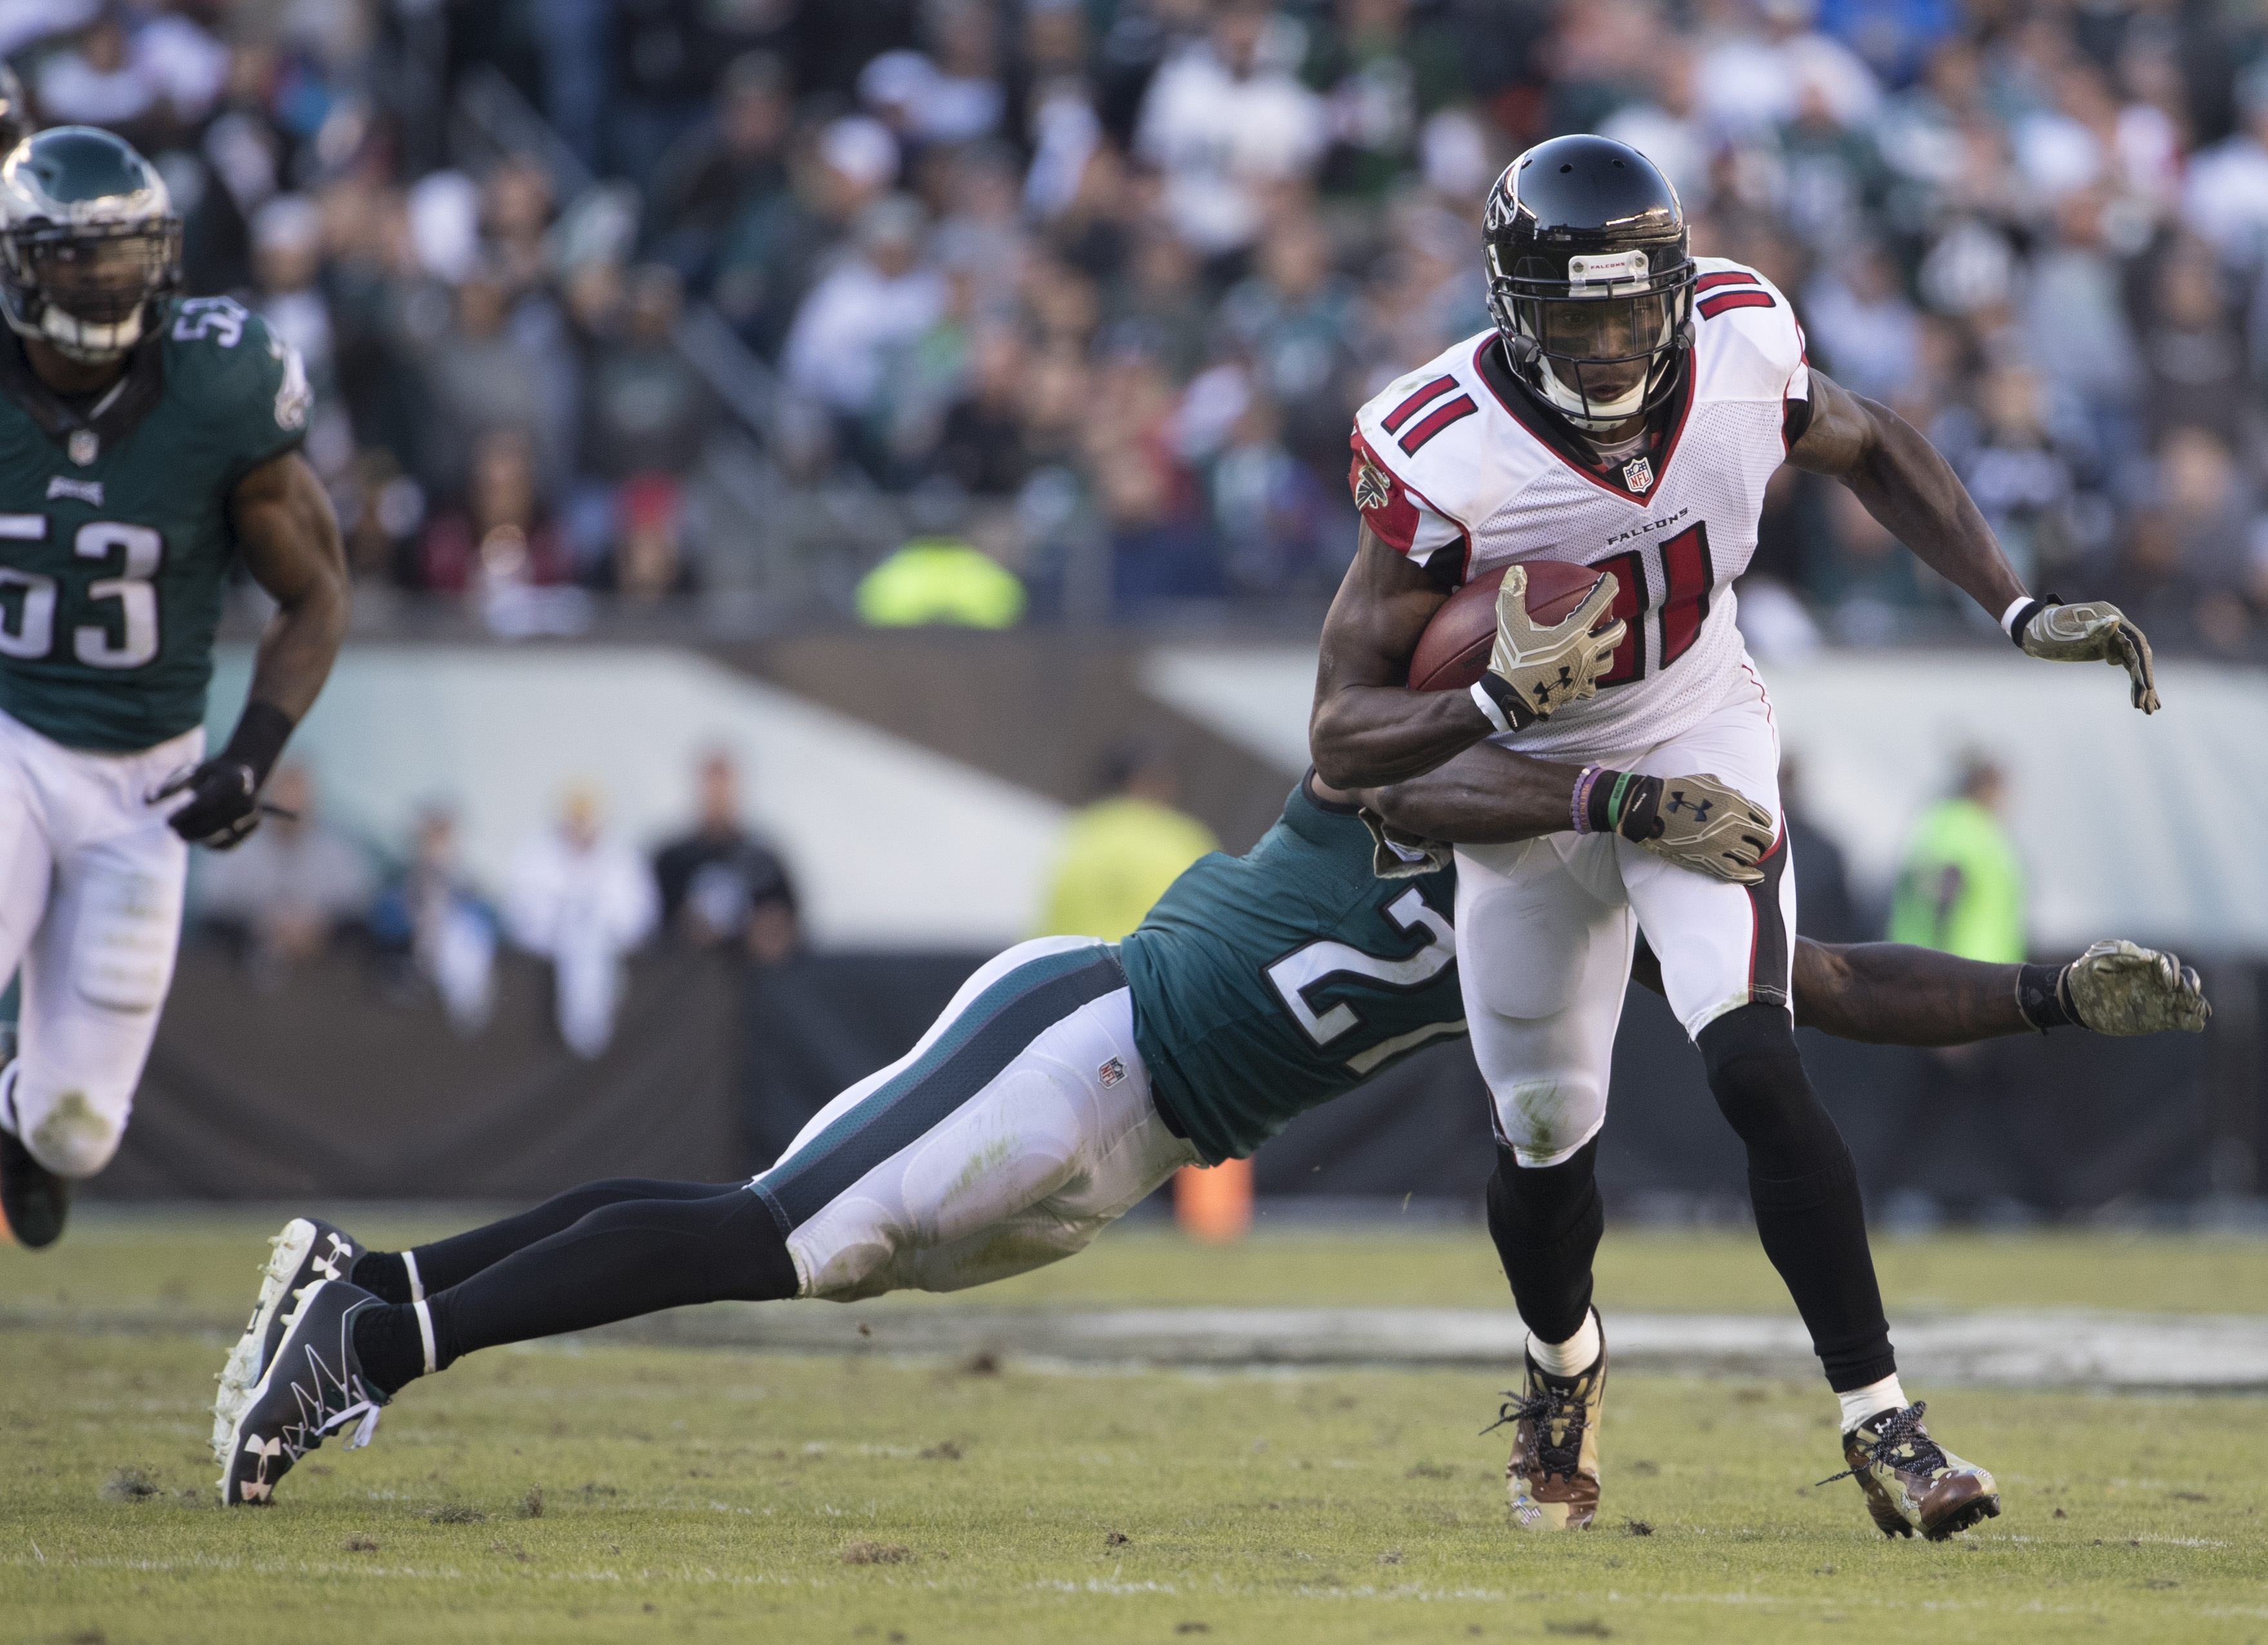 Leodis McKelvin says the Falcons are a front-running team